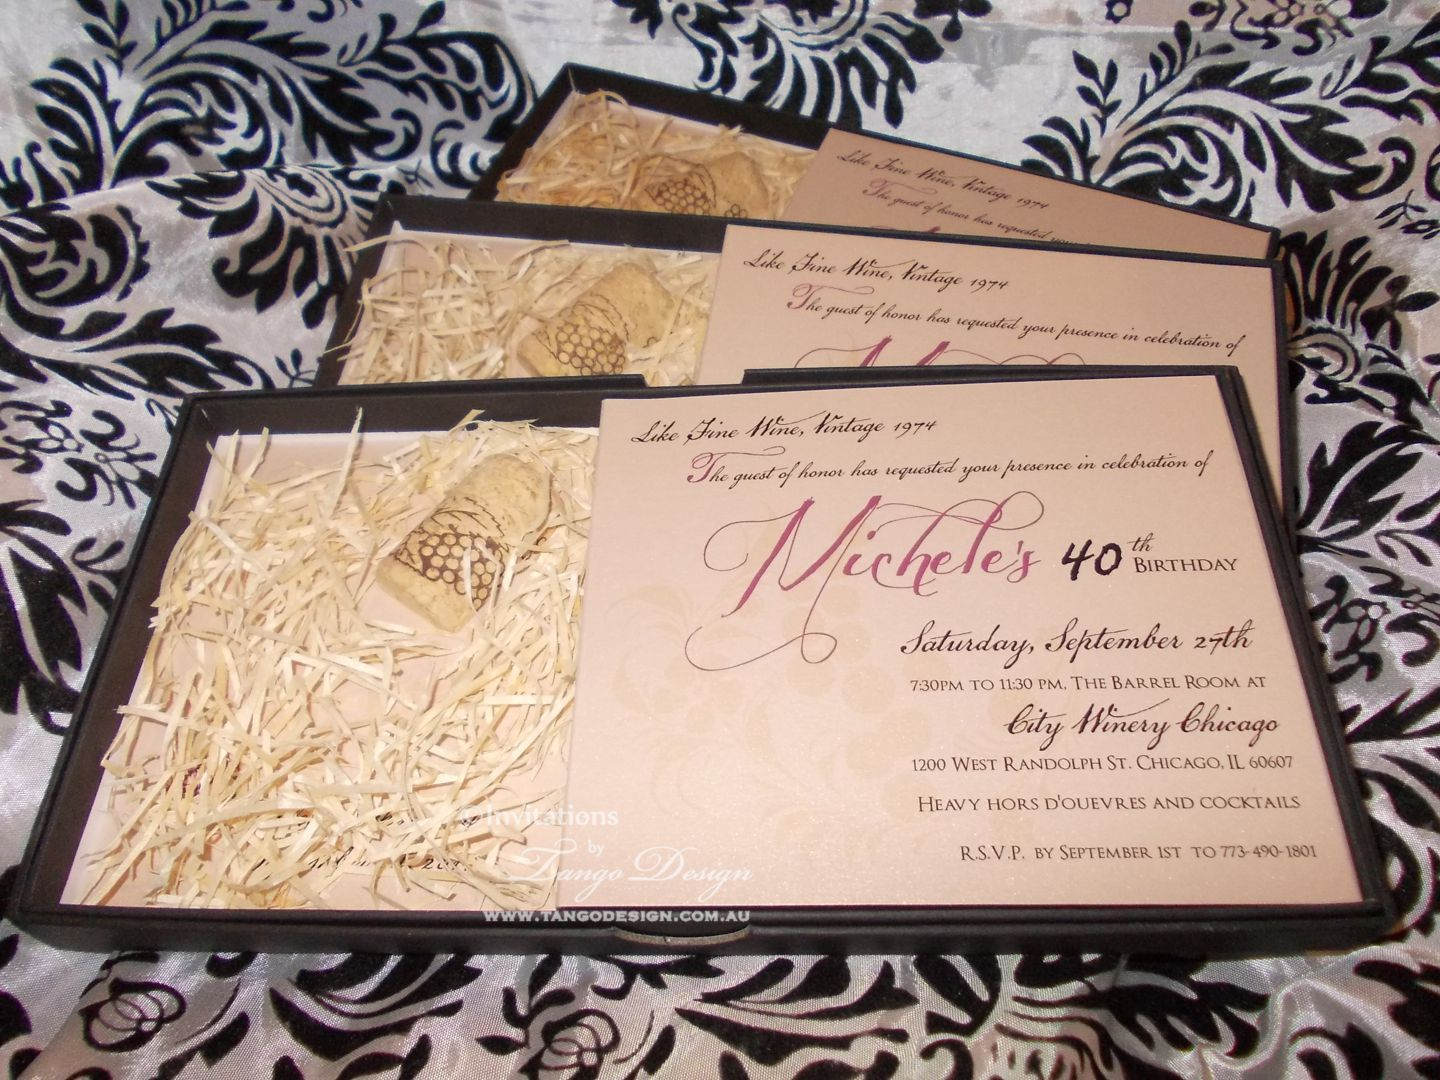 40th Birthday Invitations Custom Made With Cork For A Vineyard Or Winery Themed Party 40thbirthdayinvitations Corkinvitations Wineryinvitation